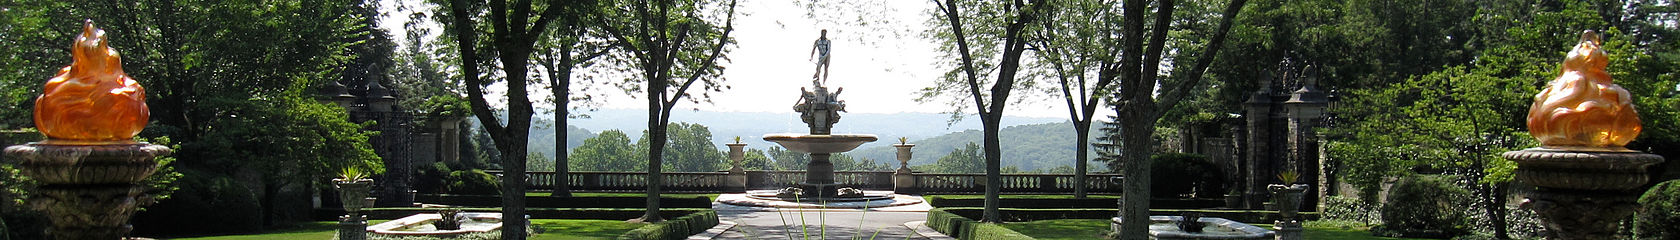 Things To Do In Westchester Today >> Things to do in Sleepy Hollow, New York | Facebook